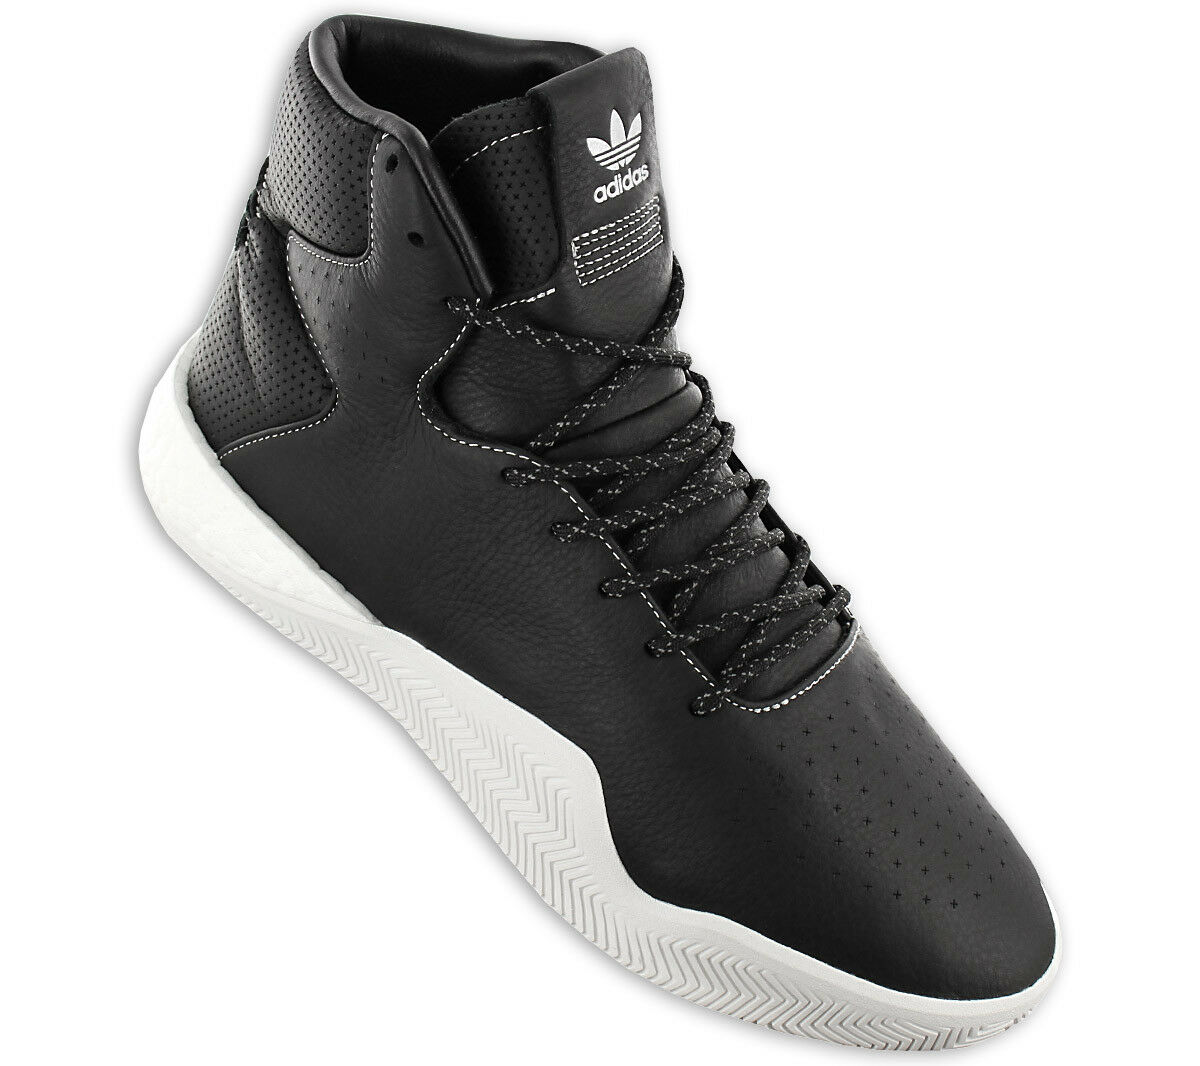 NEW adidas Tubular Instinct Boost BB8401 Men''s shoes Trainers Sneakers SALE